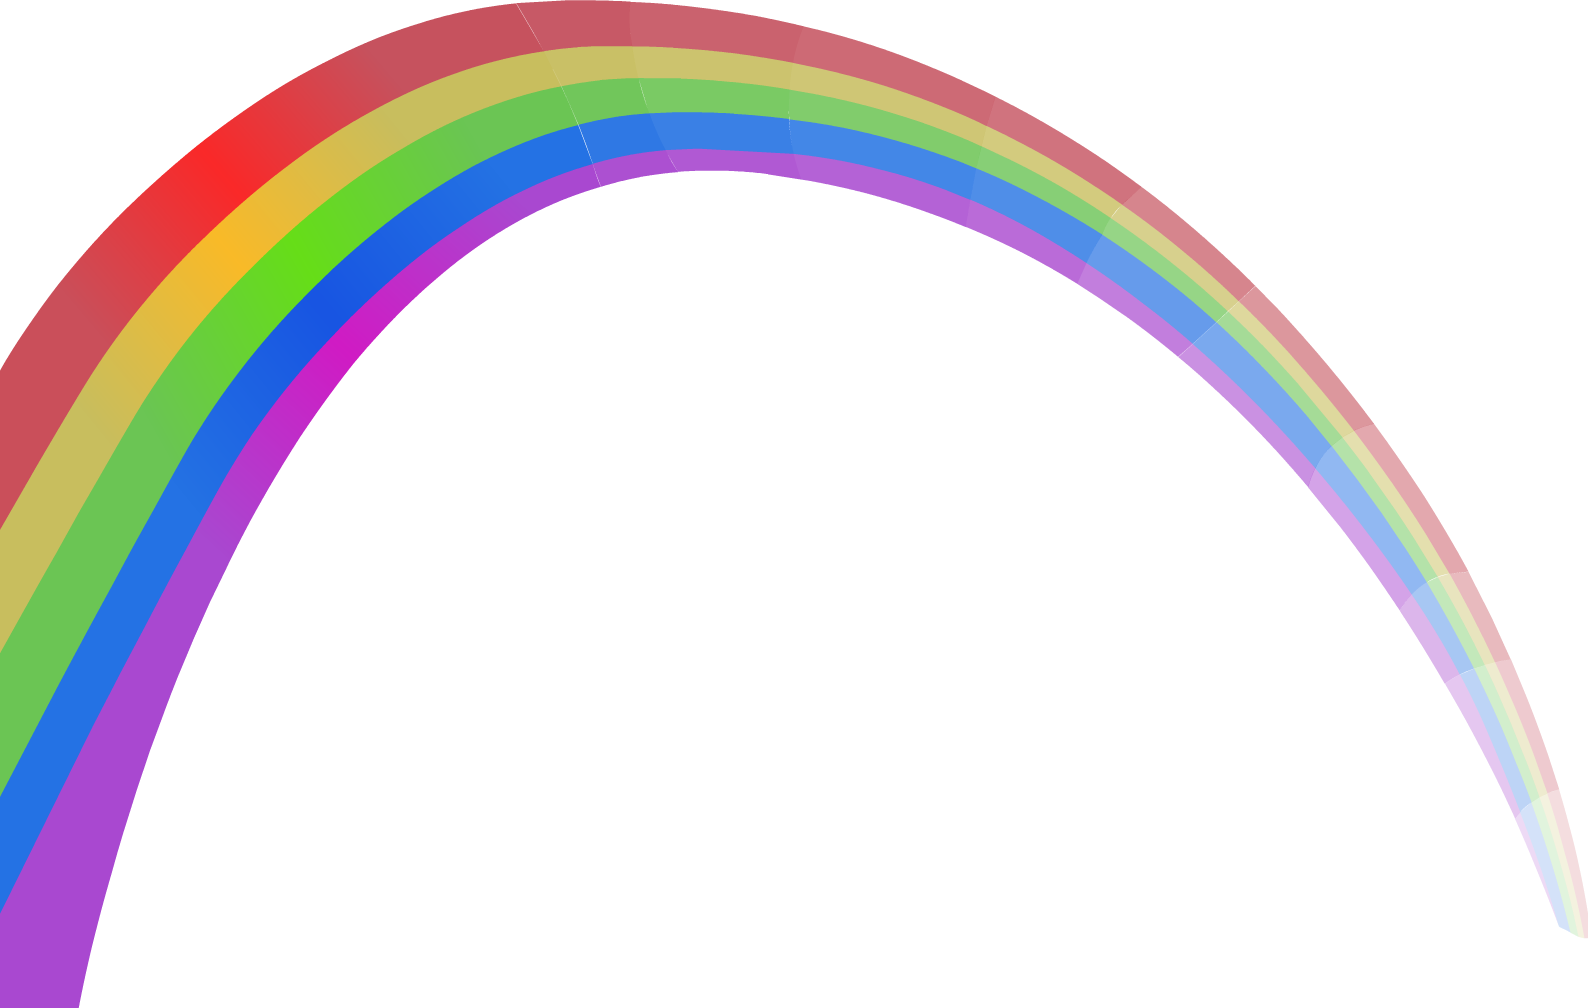 Clipart rainbow transparent background. Image mountain of misery